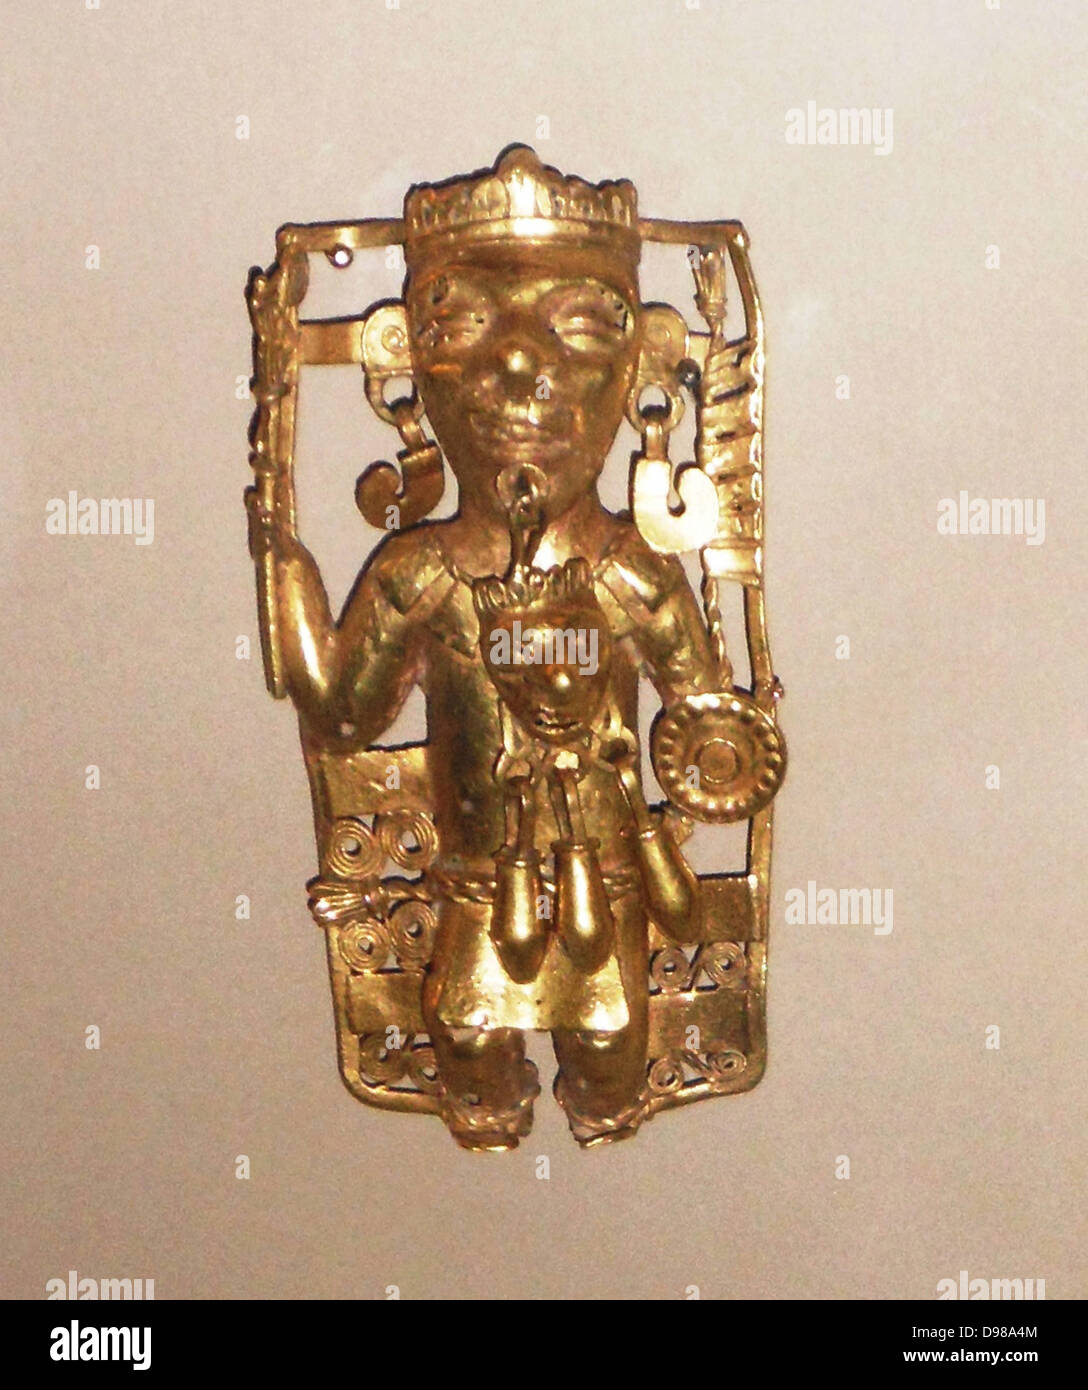 Gold pendant depicting a ruler with ritual regalia AD1200-1521.  This ruler, richly adorned with headdress necklace - Stock Image